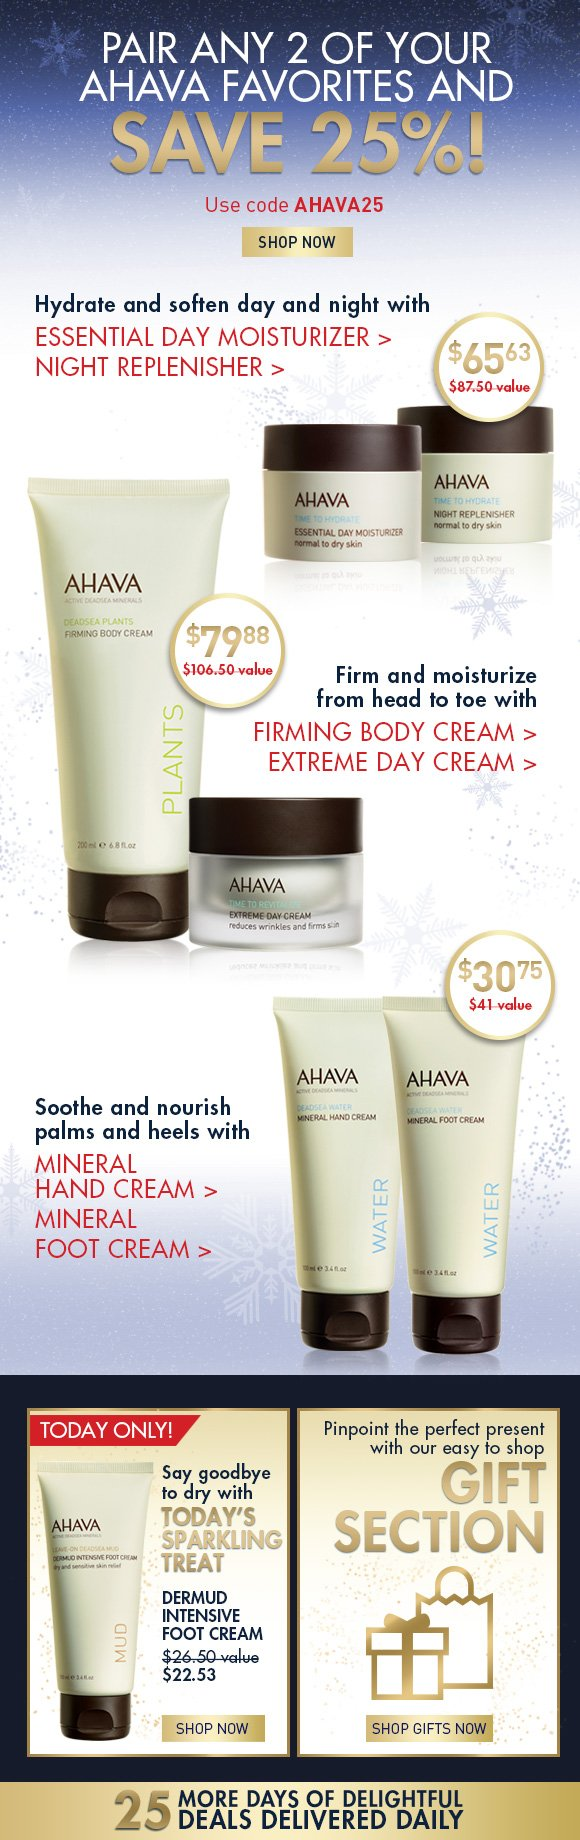 Pair any 2 of your AHAVA favorites and save 25%! Use code AHAVA25 SHOP NOW hydrate and soften night and day with Essential Day Moisturizer > & Night Replenisher > firm and moisturize from head to toe with  Firming Body Cream >  & Extreme Day Cream > soothe and nourish palms and heels with Mineral Hand Cream > & Mineral Foot Cream > Say goodbye to dry with Today's Sparkling Treat Dermud Intensive Foot Cream Today only! 15% off $26.50 value  $22.53 Shop Now Pinpoint the perfect present with our easy to shop gift section. Shop gifts now 25 more days of delightful deals delivered daily!